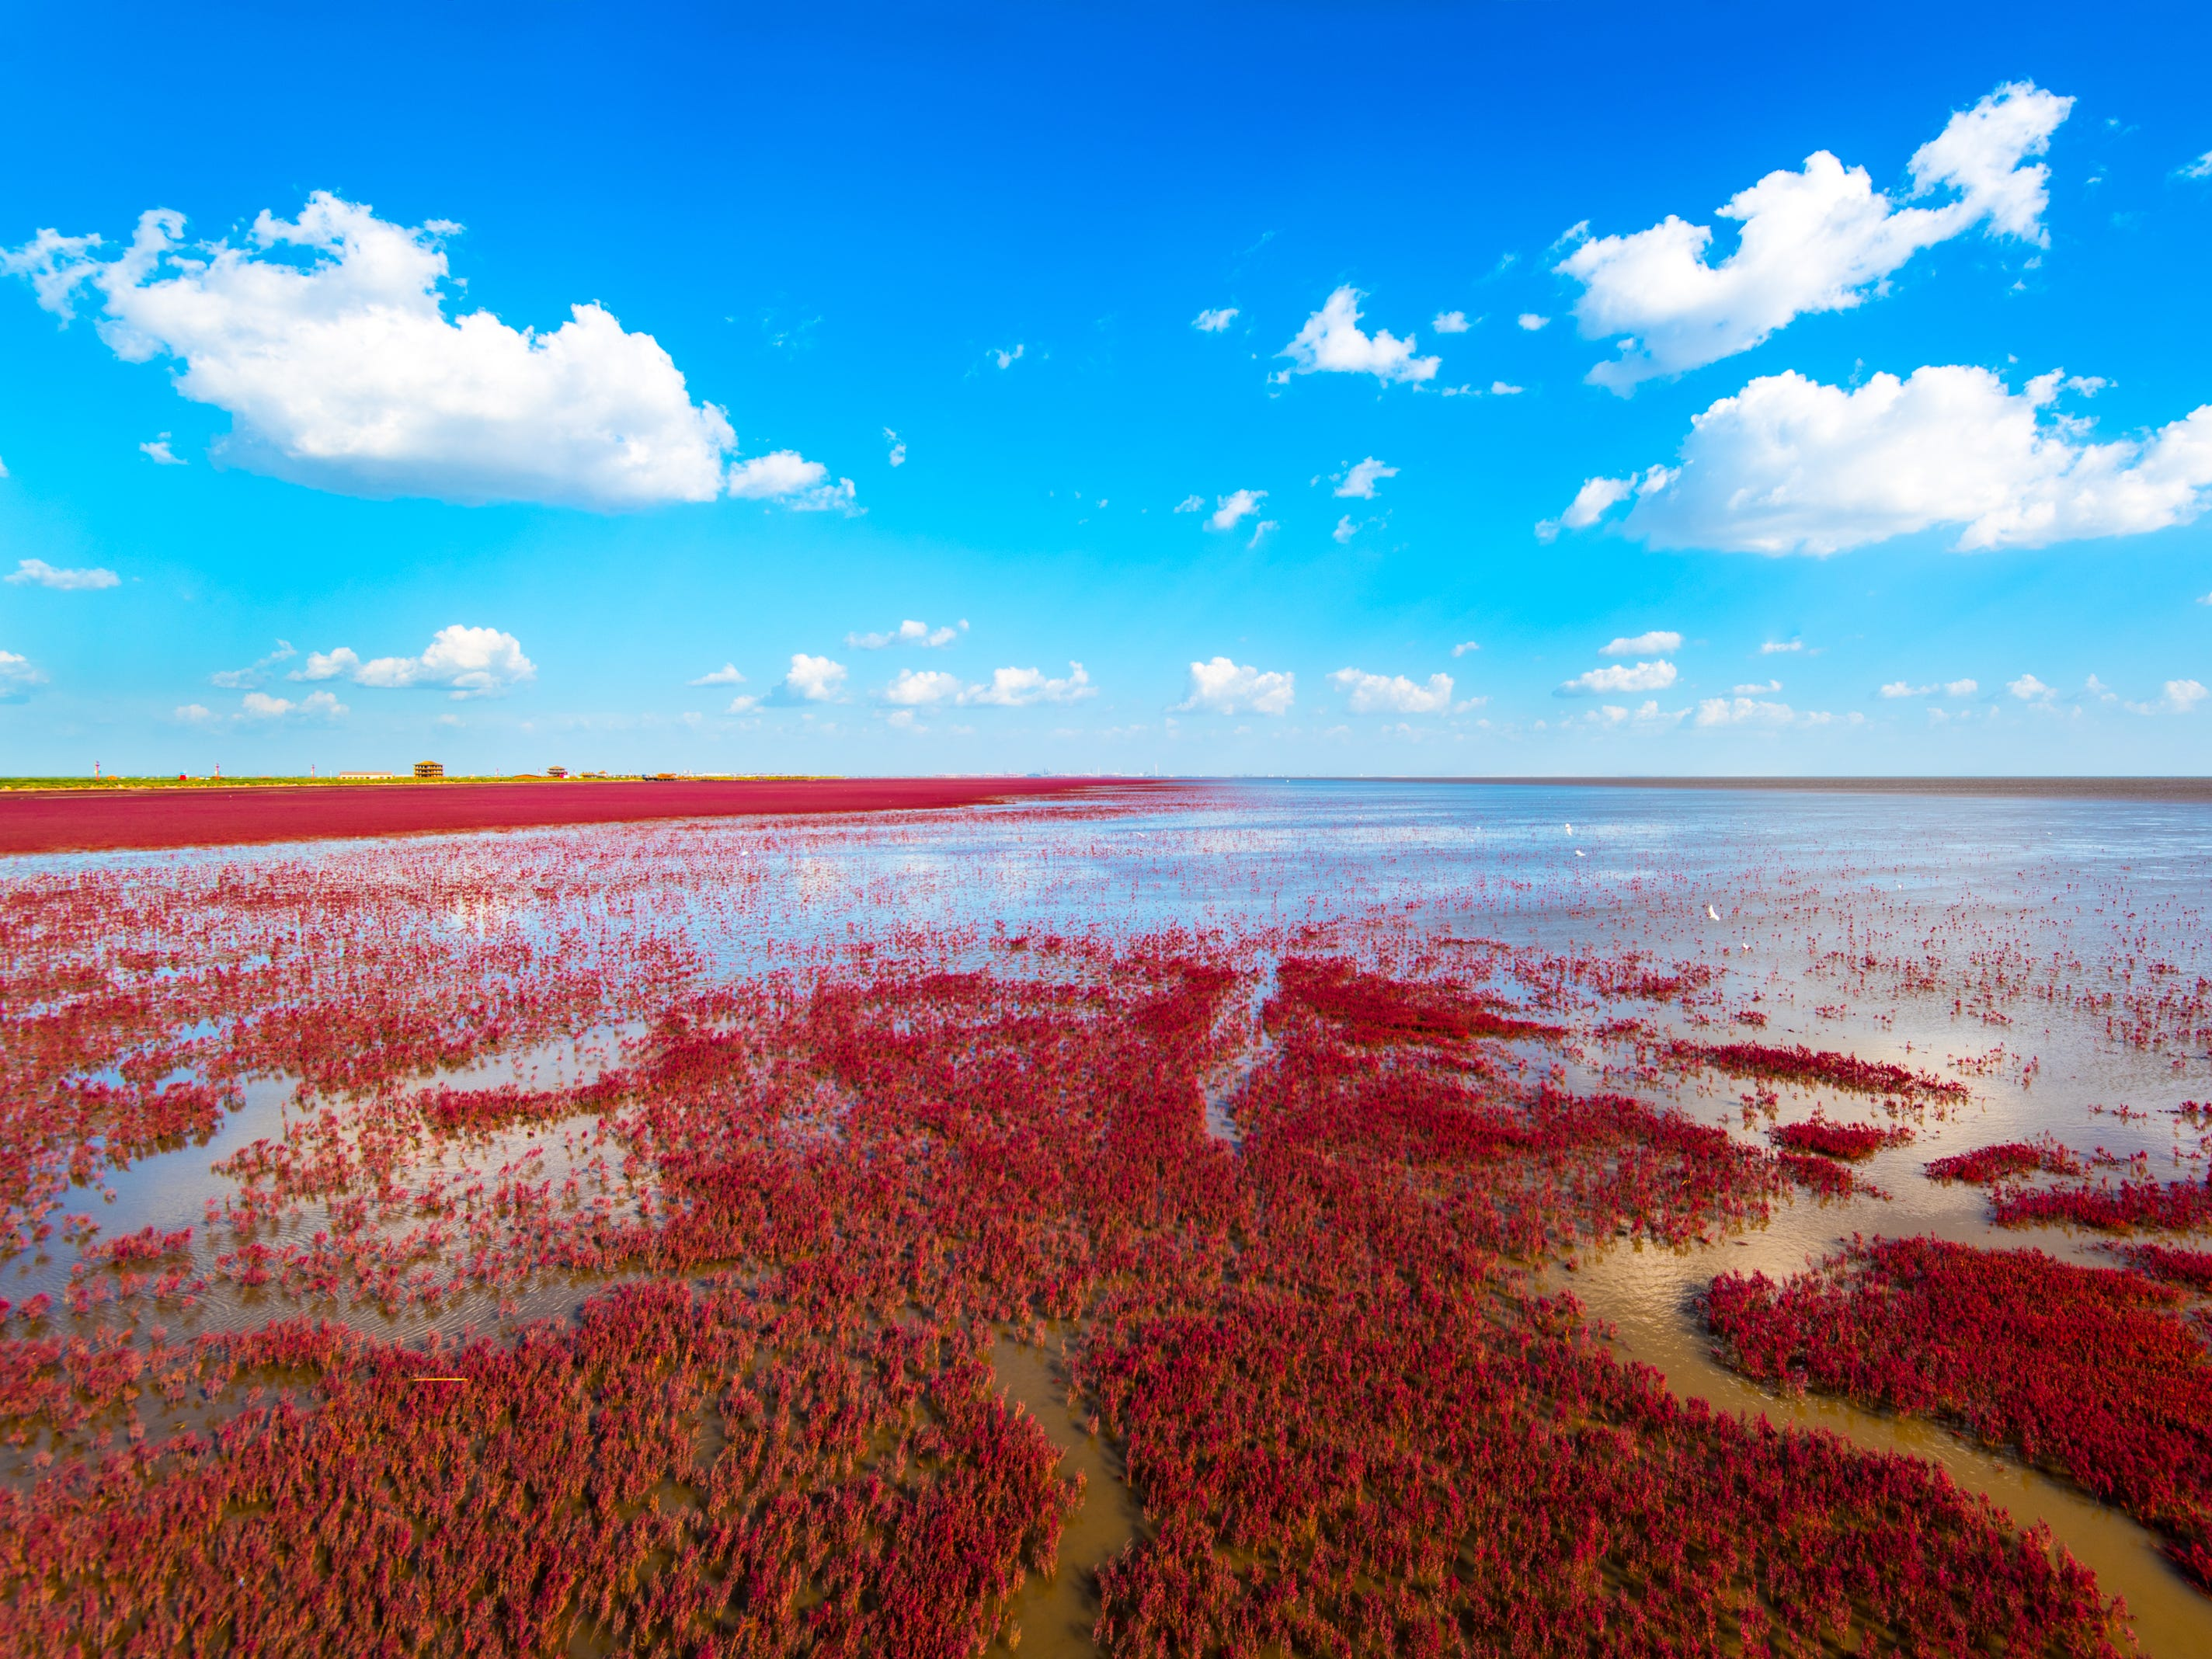 """Slide 13 of 51: The Red Beach gets its distinct crimson color from an abundance of """"red weed"""" called Chenopodium that thrives in alkaline soil. The area is also known as home to one of the rarest cranes in the world – the red crowned crane."""